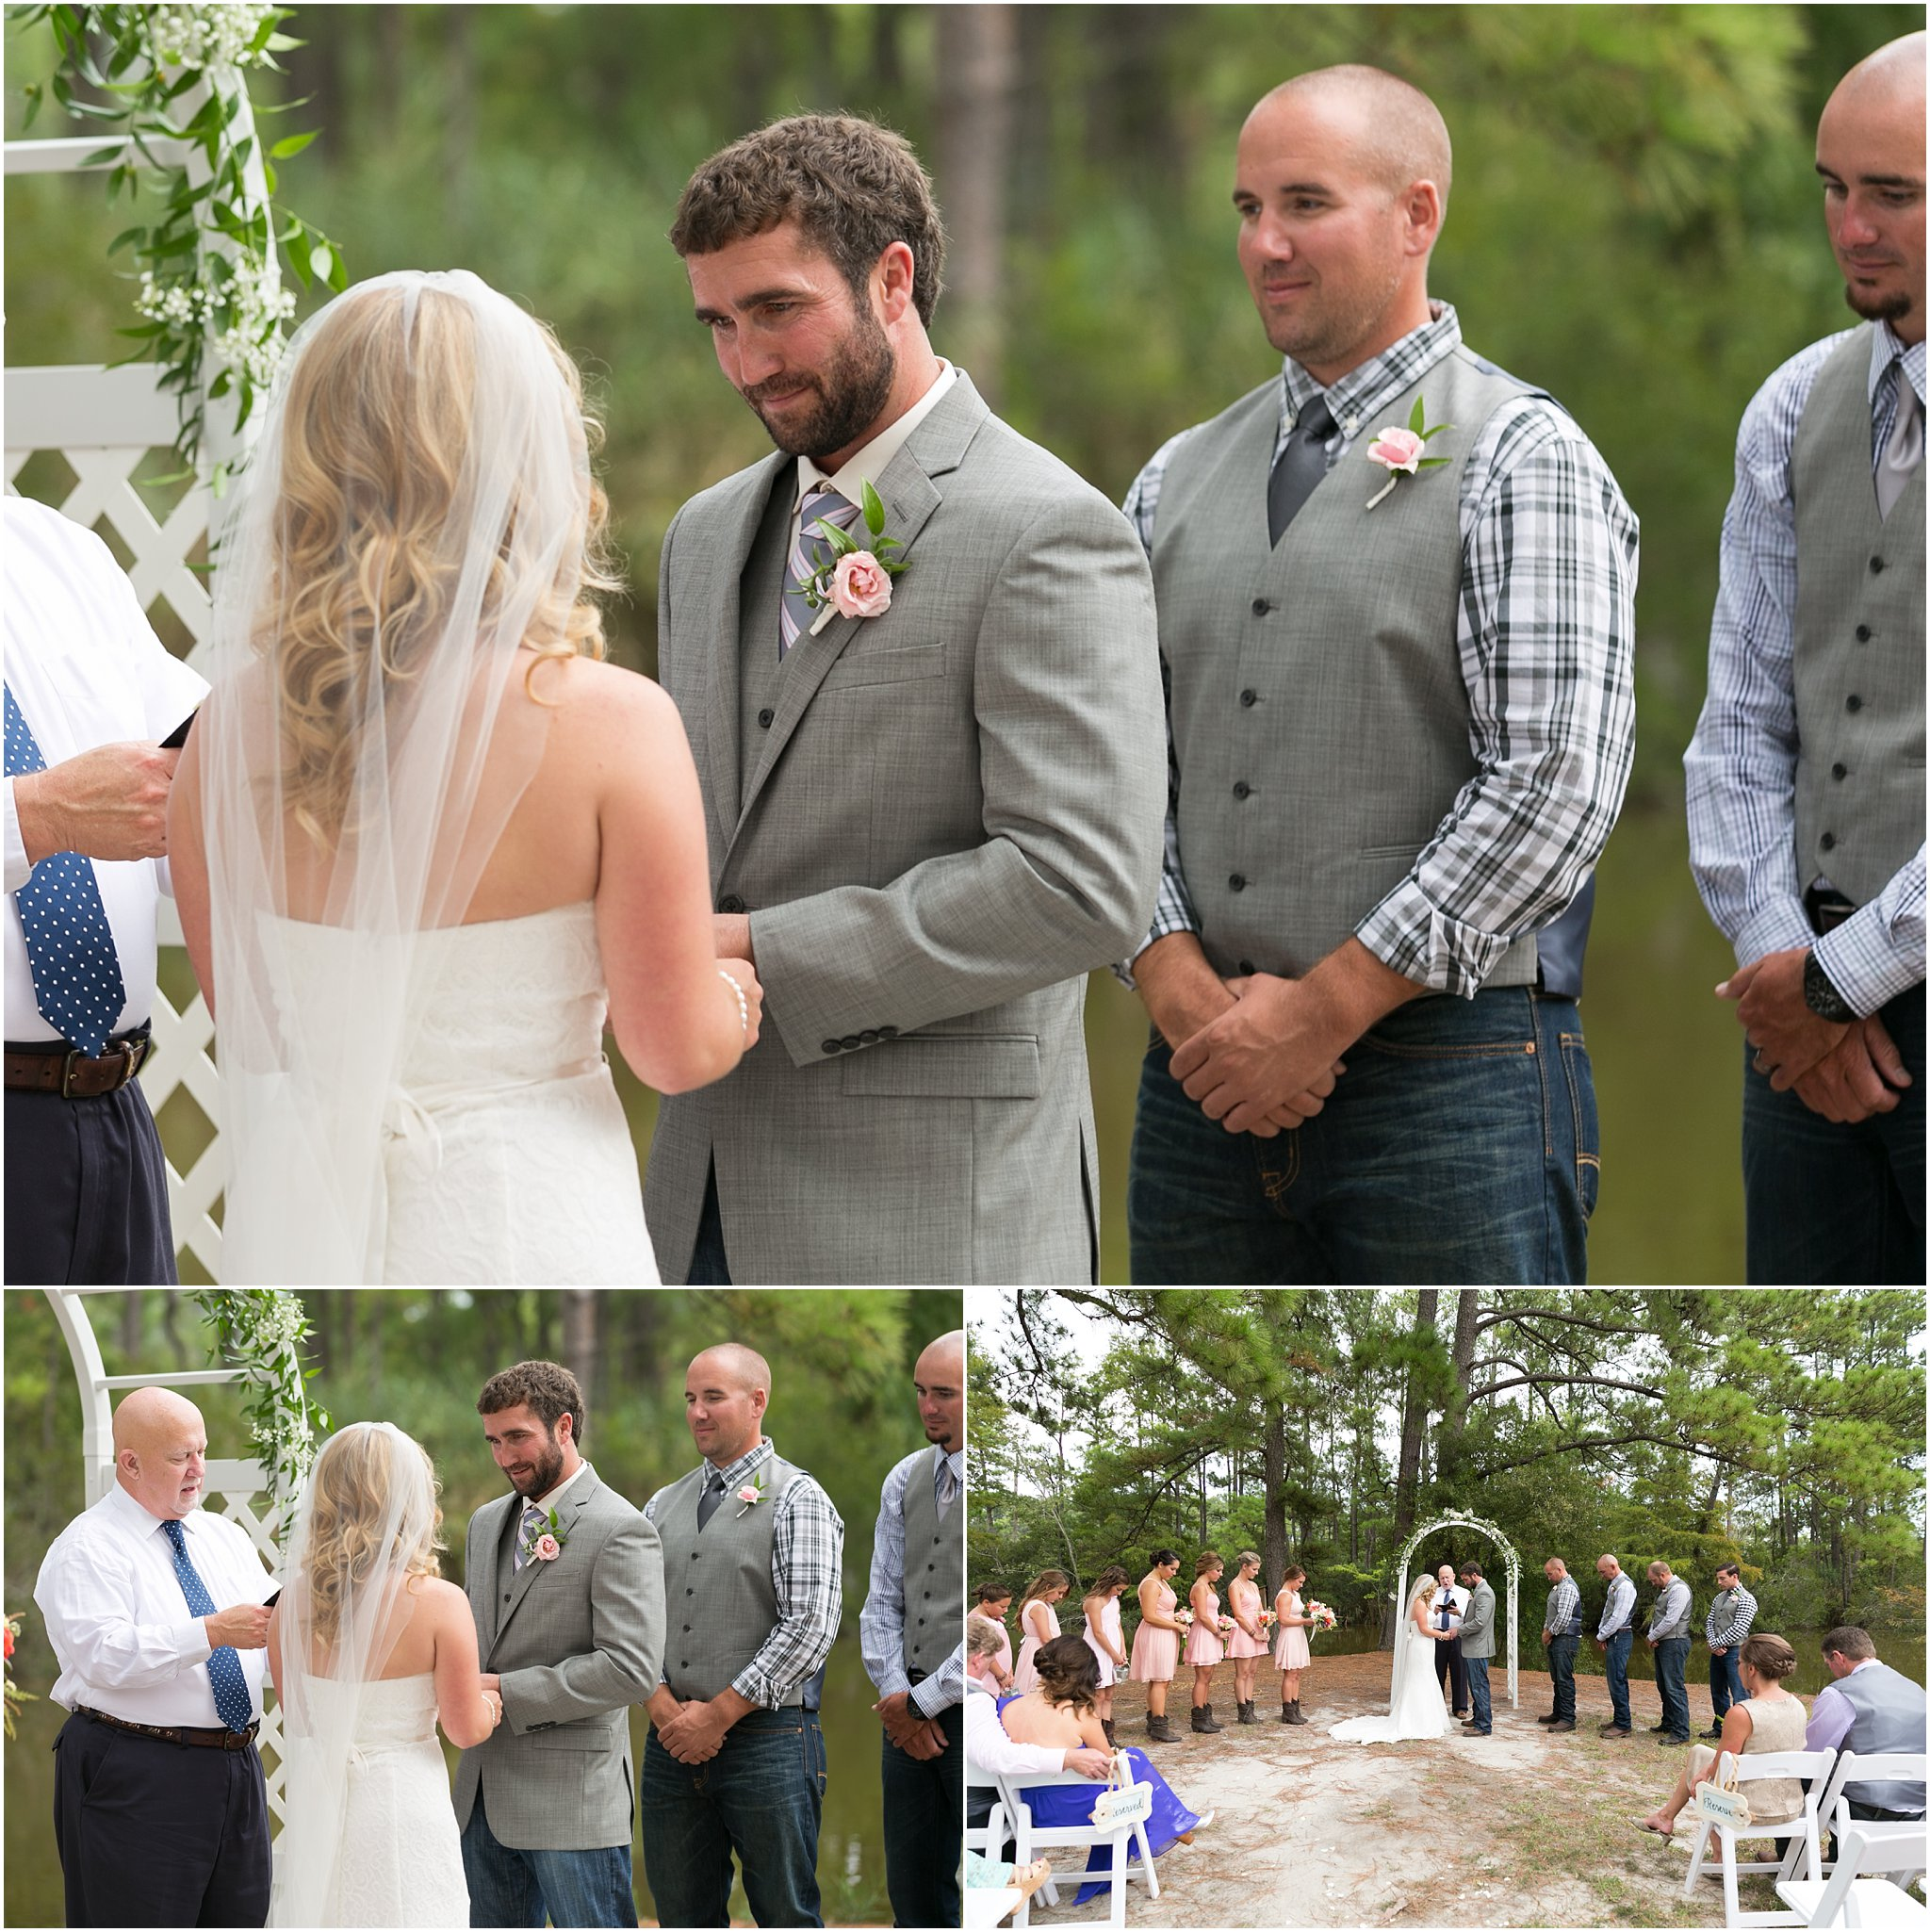 jessica_ryan_photography_wedding_virginia_beach_bluepetesrestaurant_wedding_0827